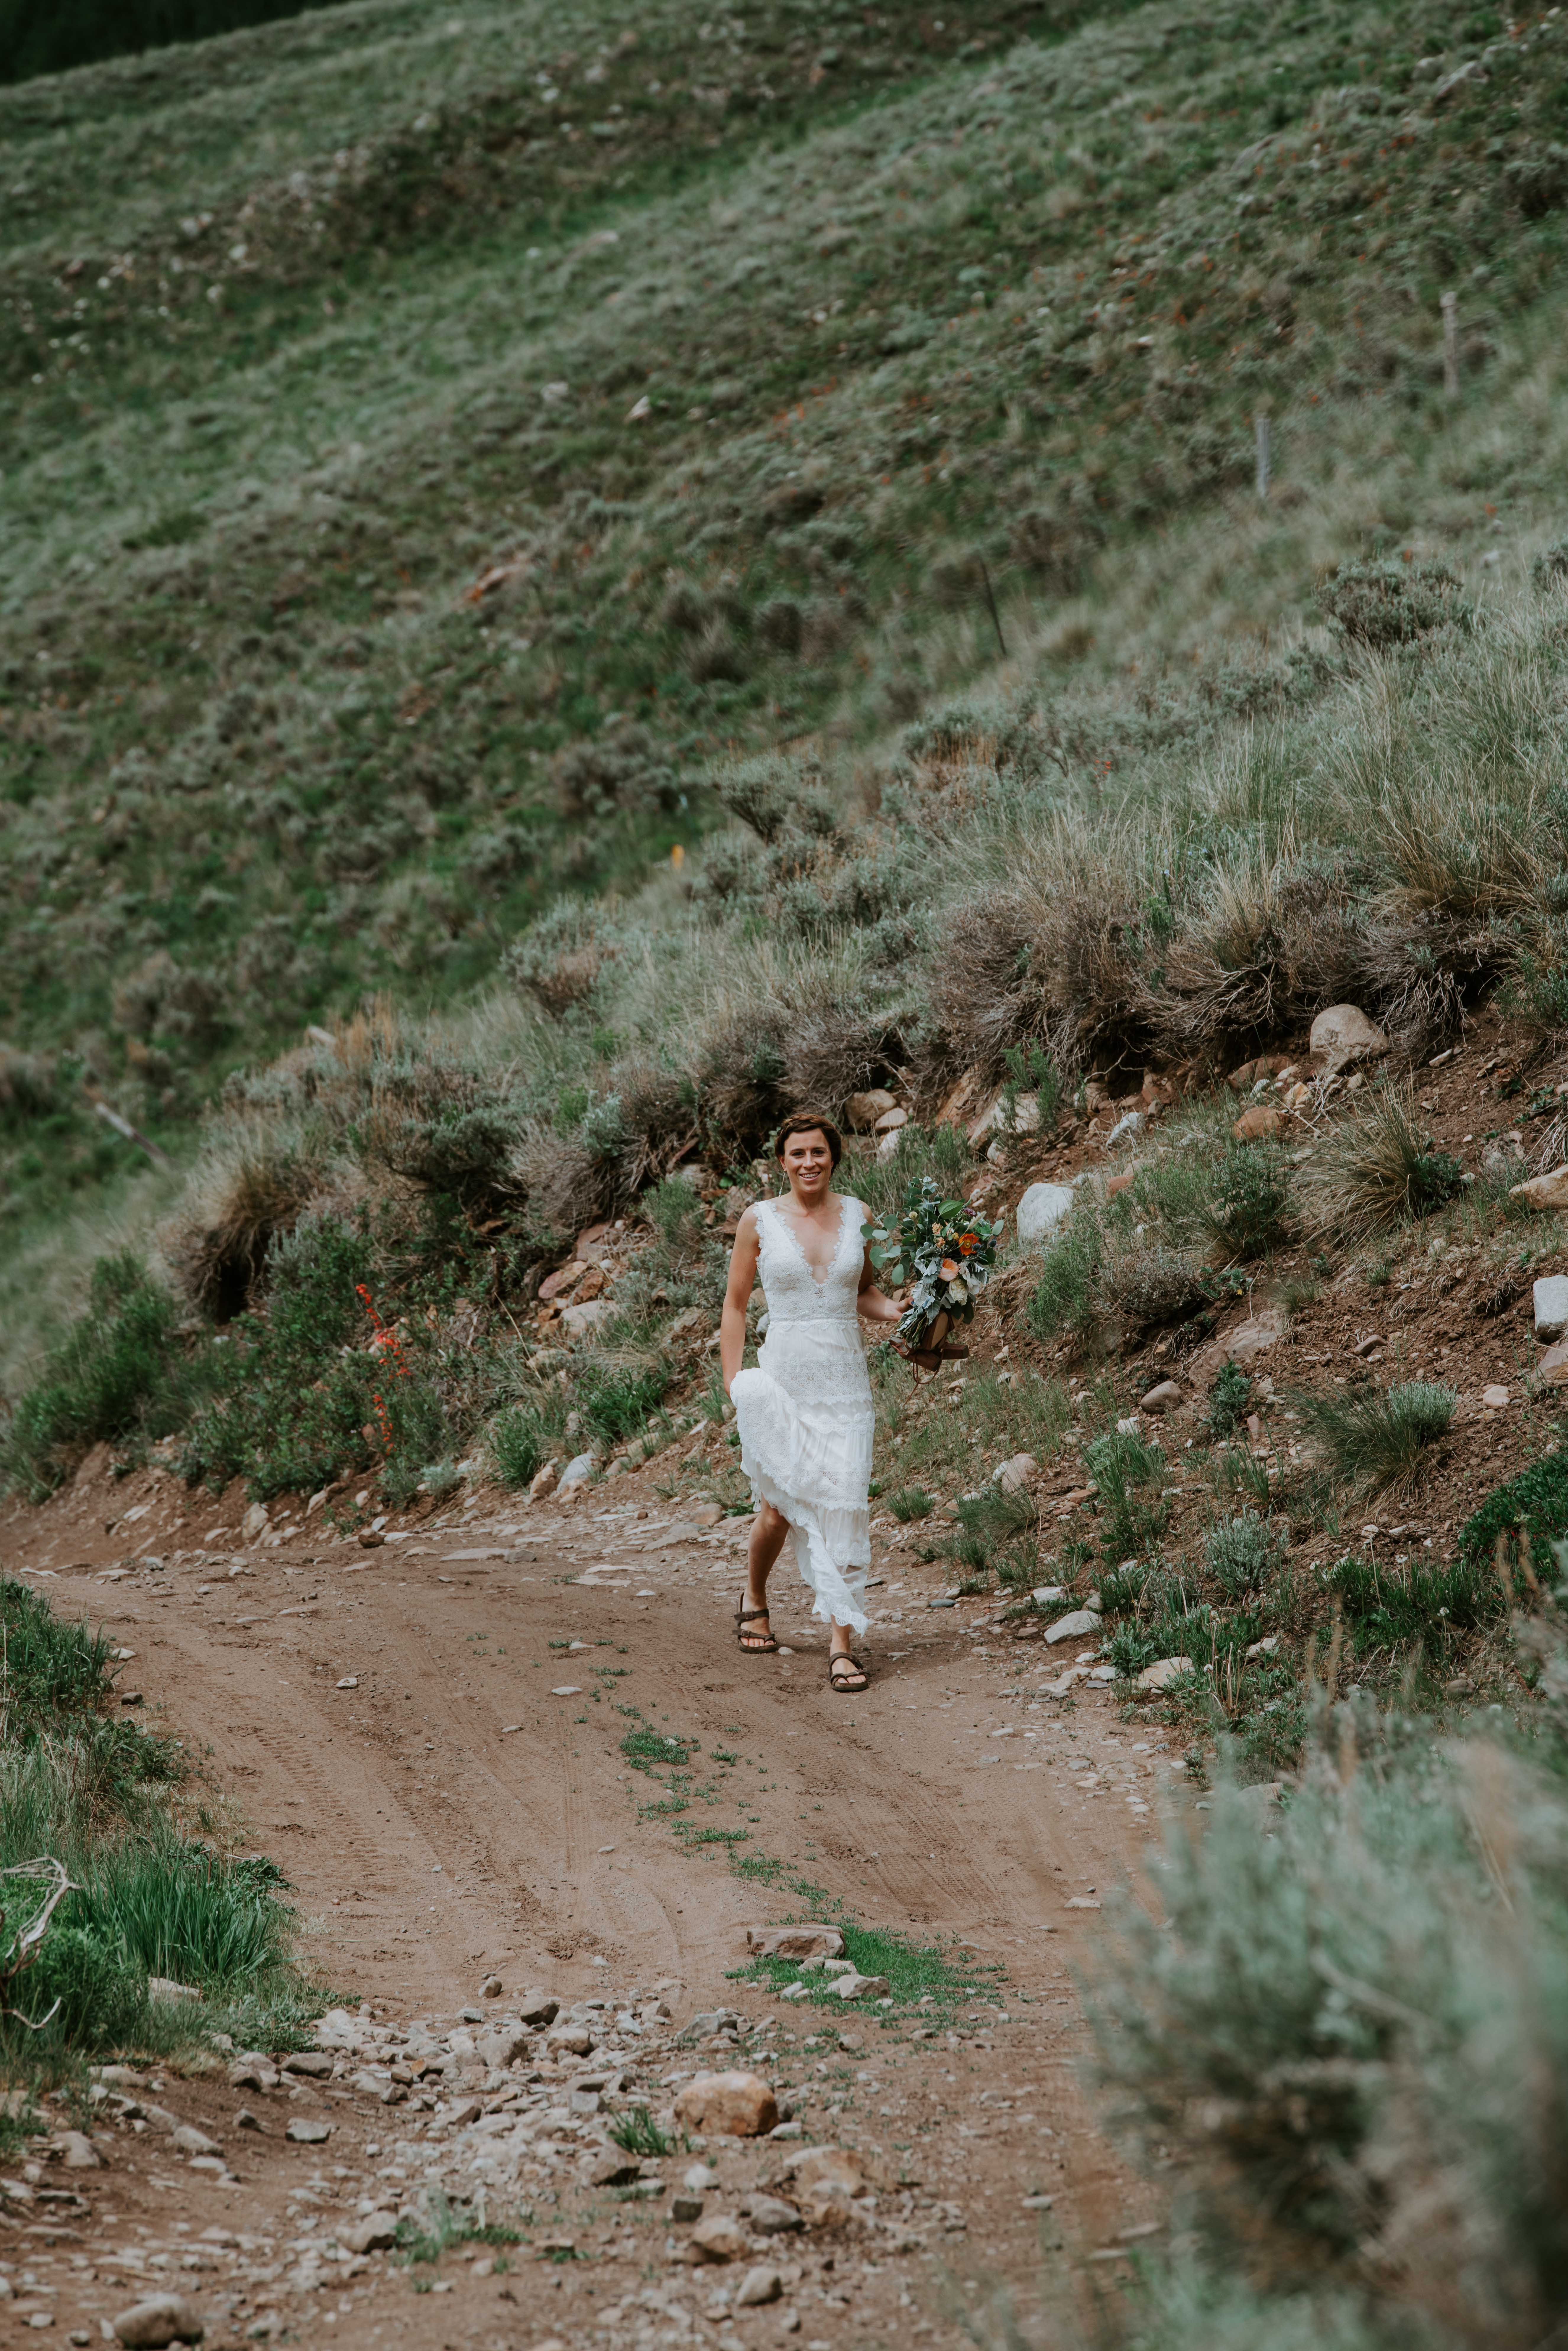 Laura_Alexe_Wedding_Crested_Butte_MegONeillPhotography__180616_26